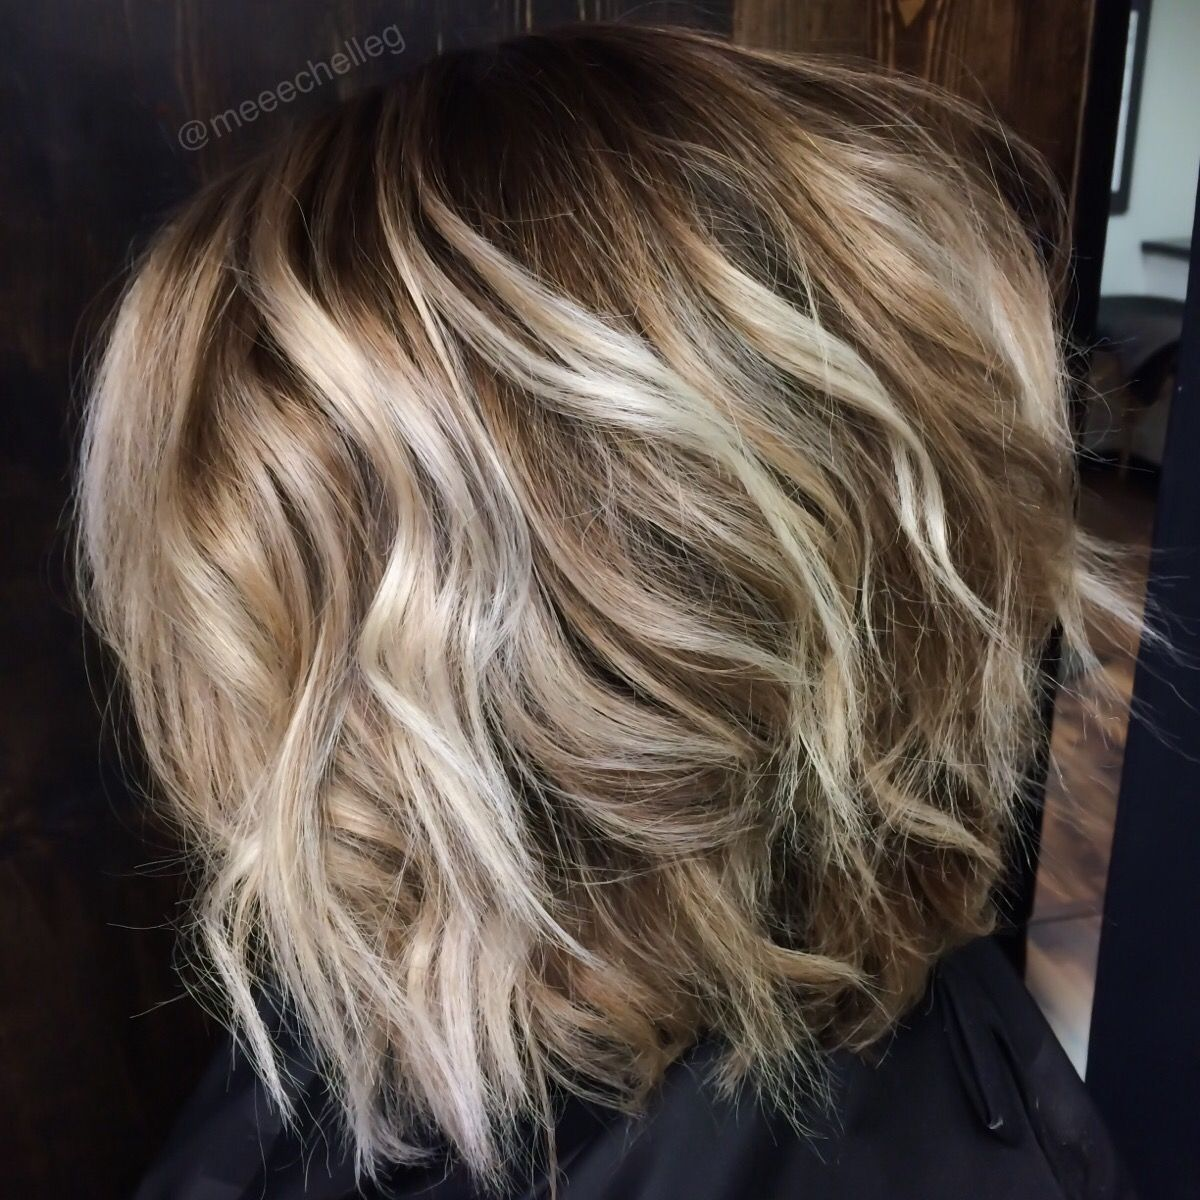 Image Result For Highlights And Lowlights For Short Brown Hair Hair Blonde Highlights Lowlights Short Hair Highlights Blonde Hair With Highlights